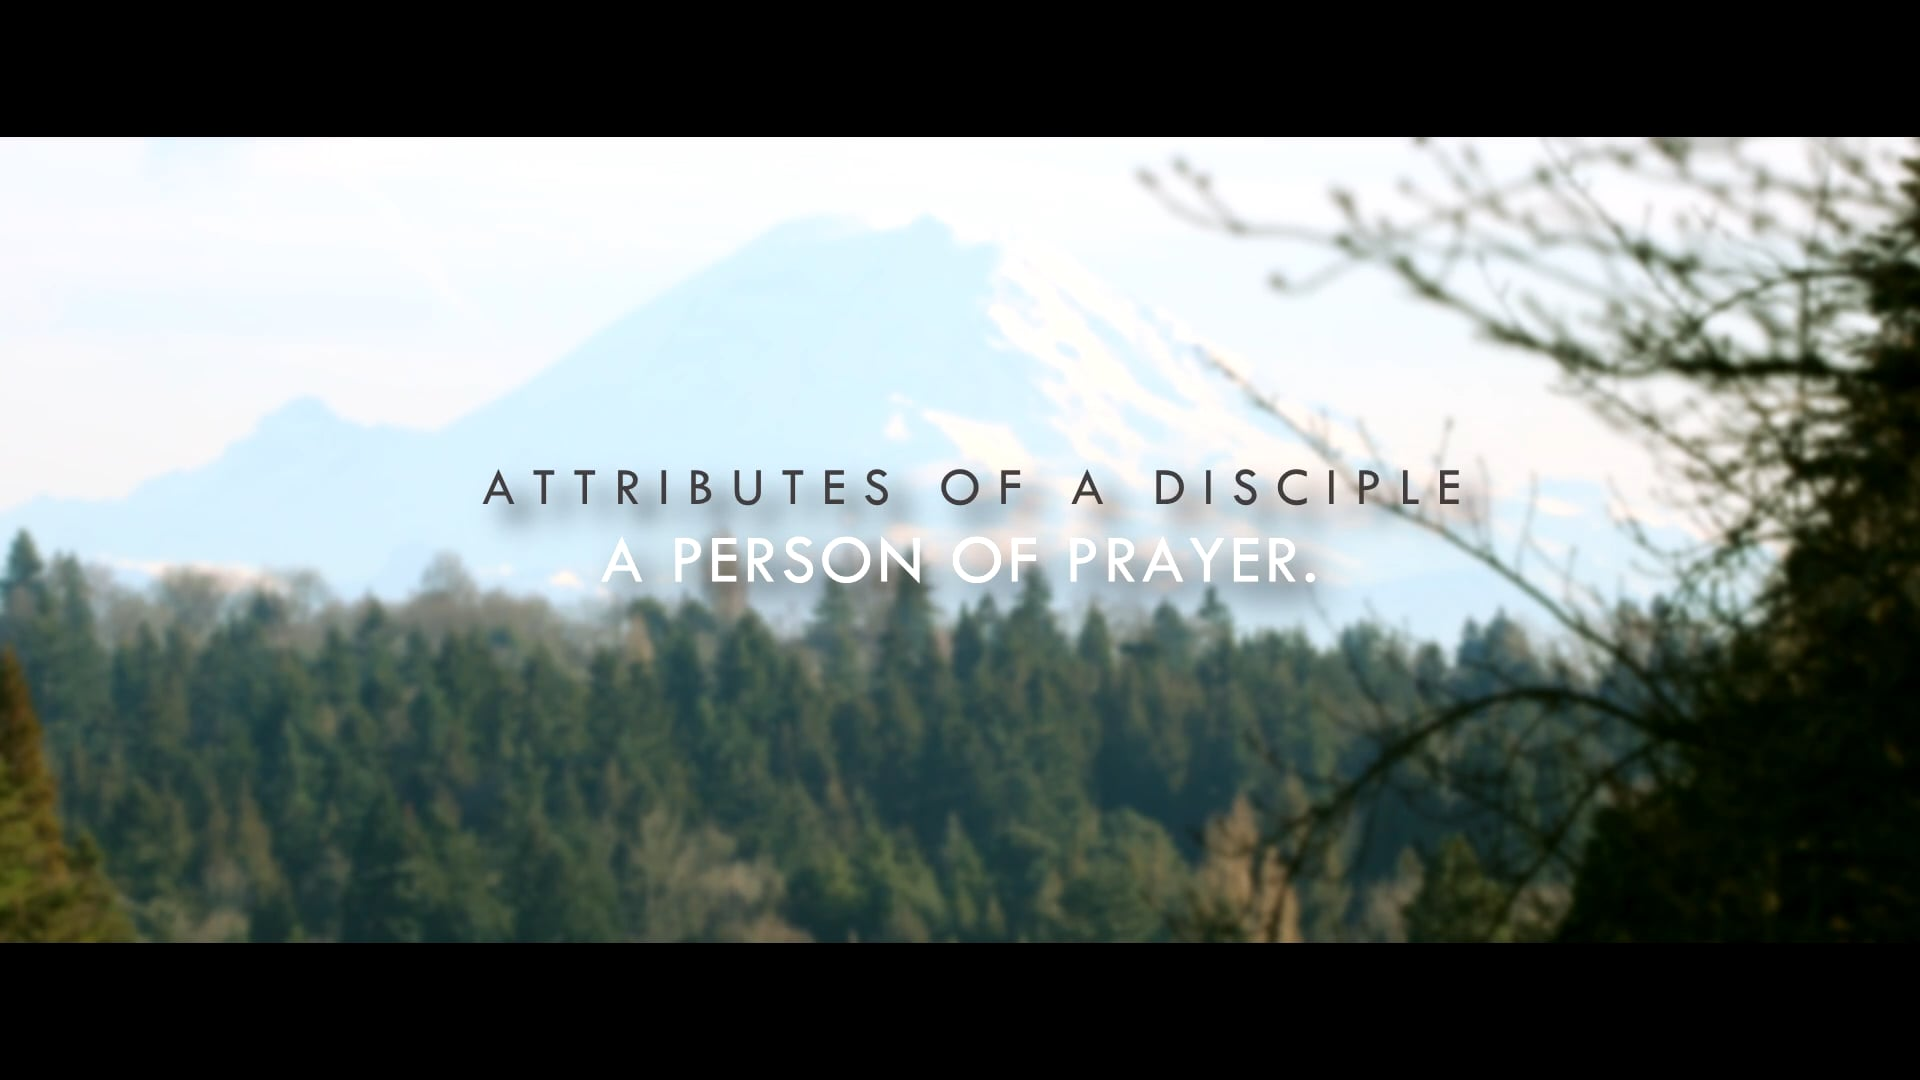 Attributes of a Disciple Part 3 - A person of prayer.